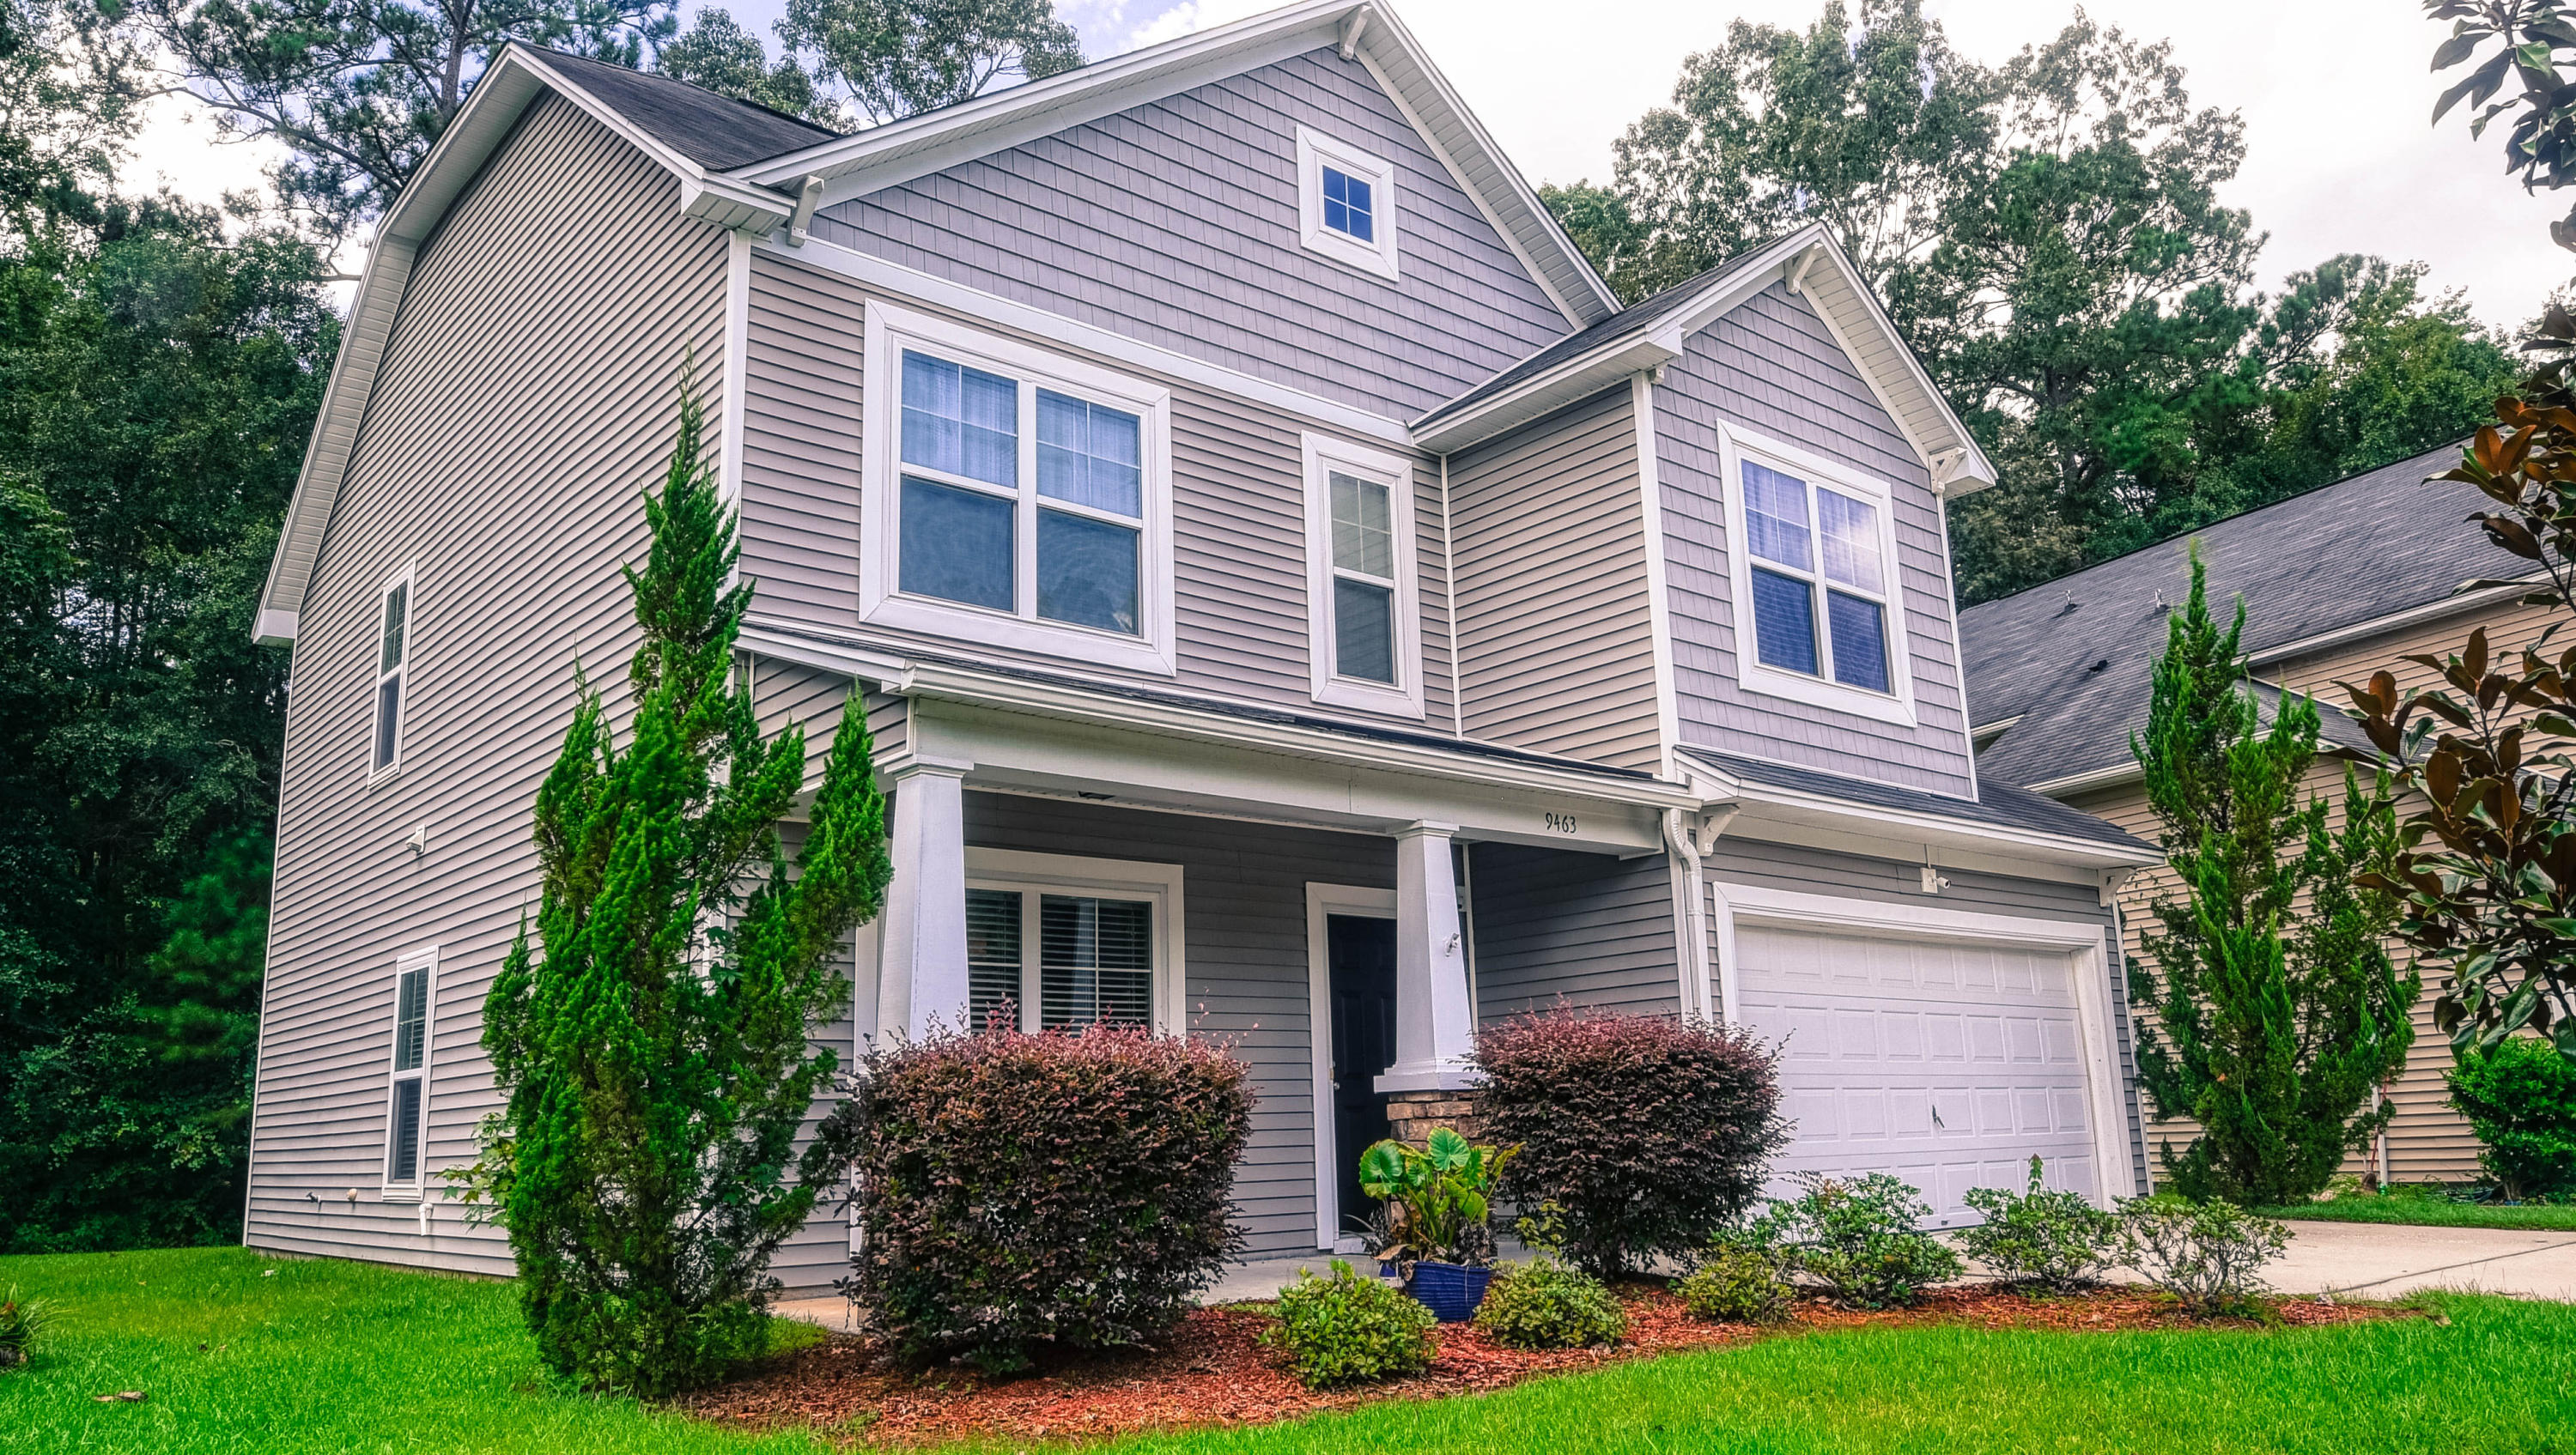 9463 Netted Charm Court Ladson, SC 29456